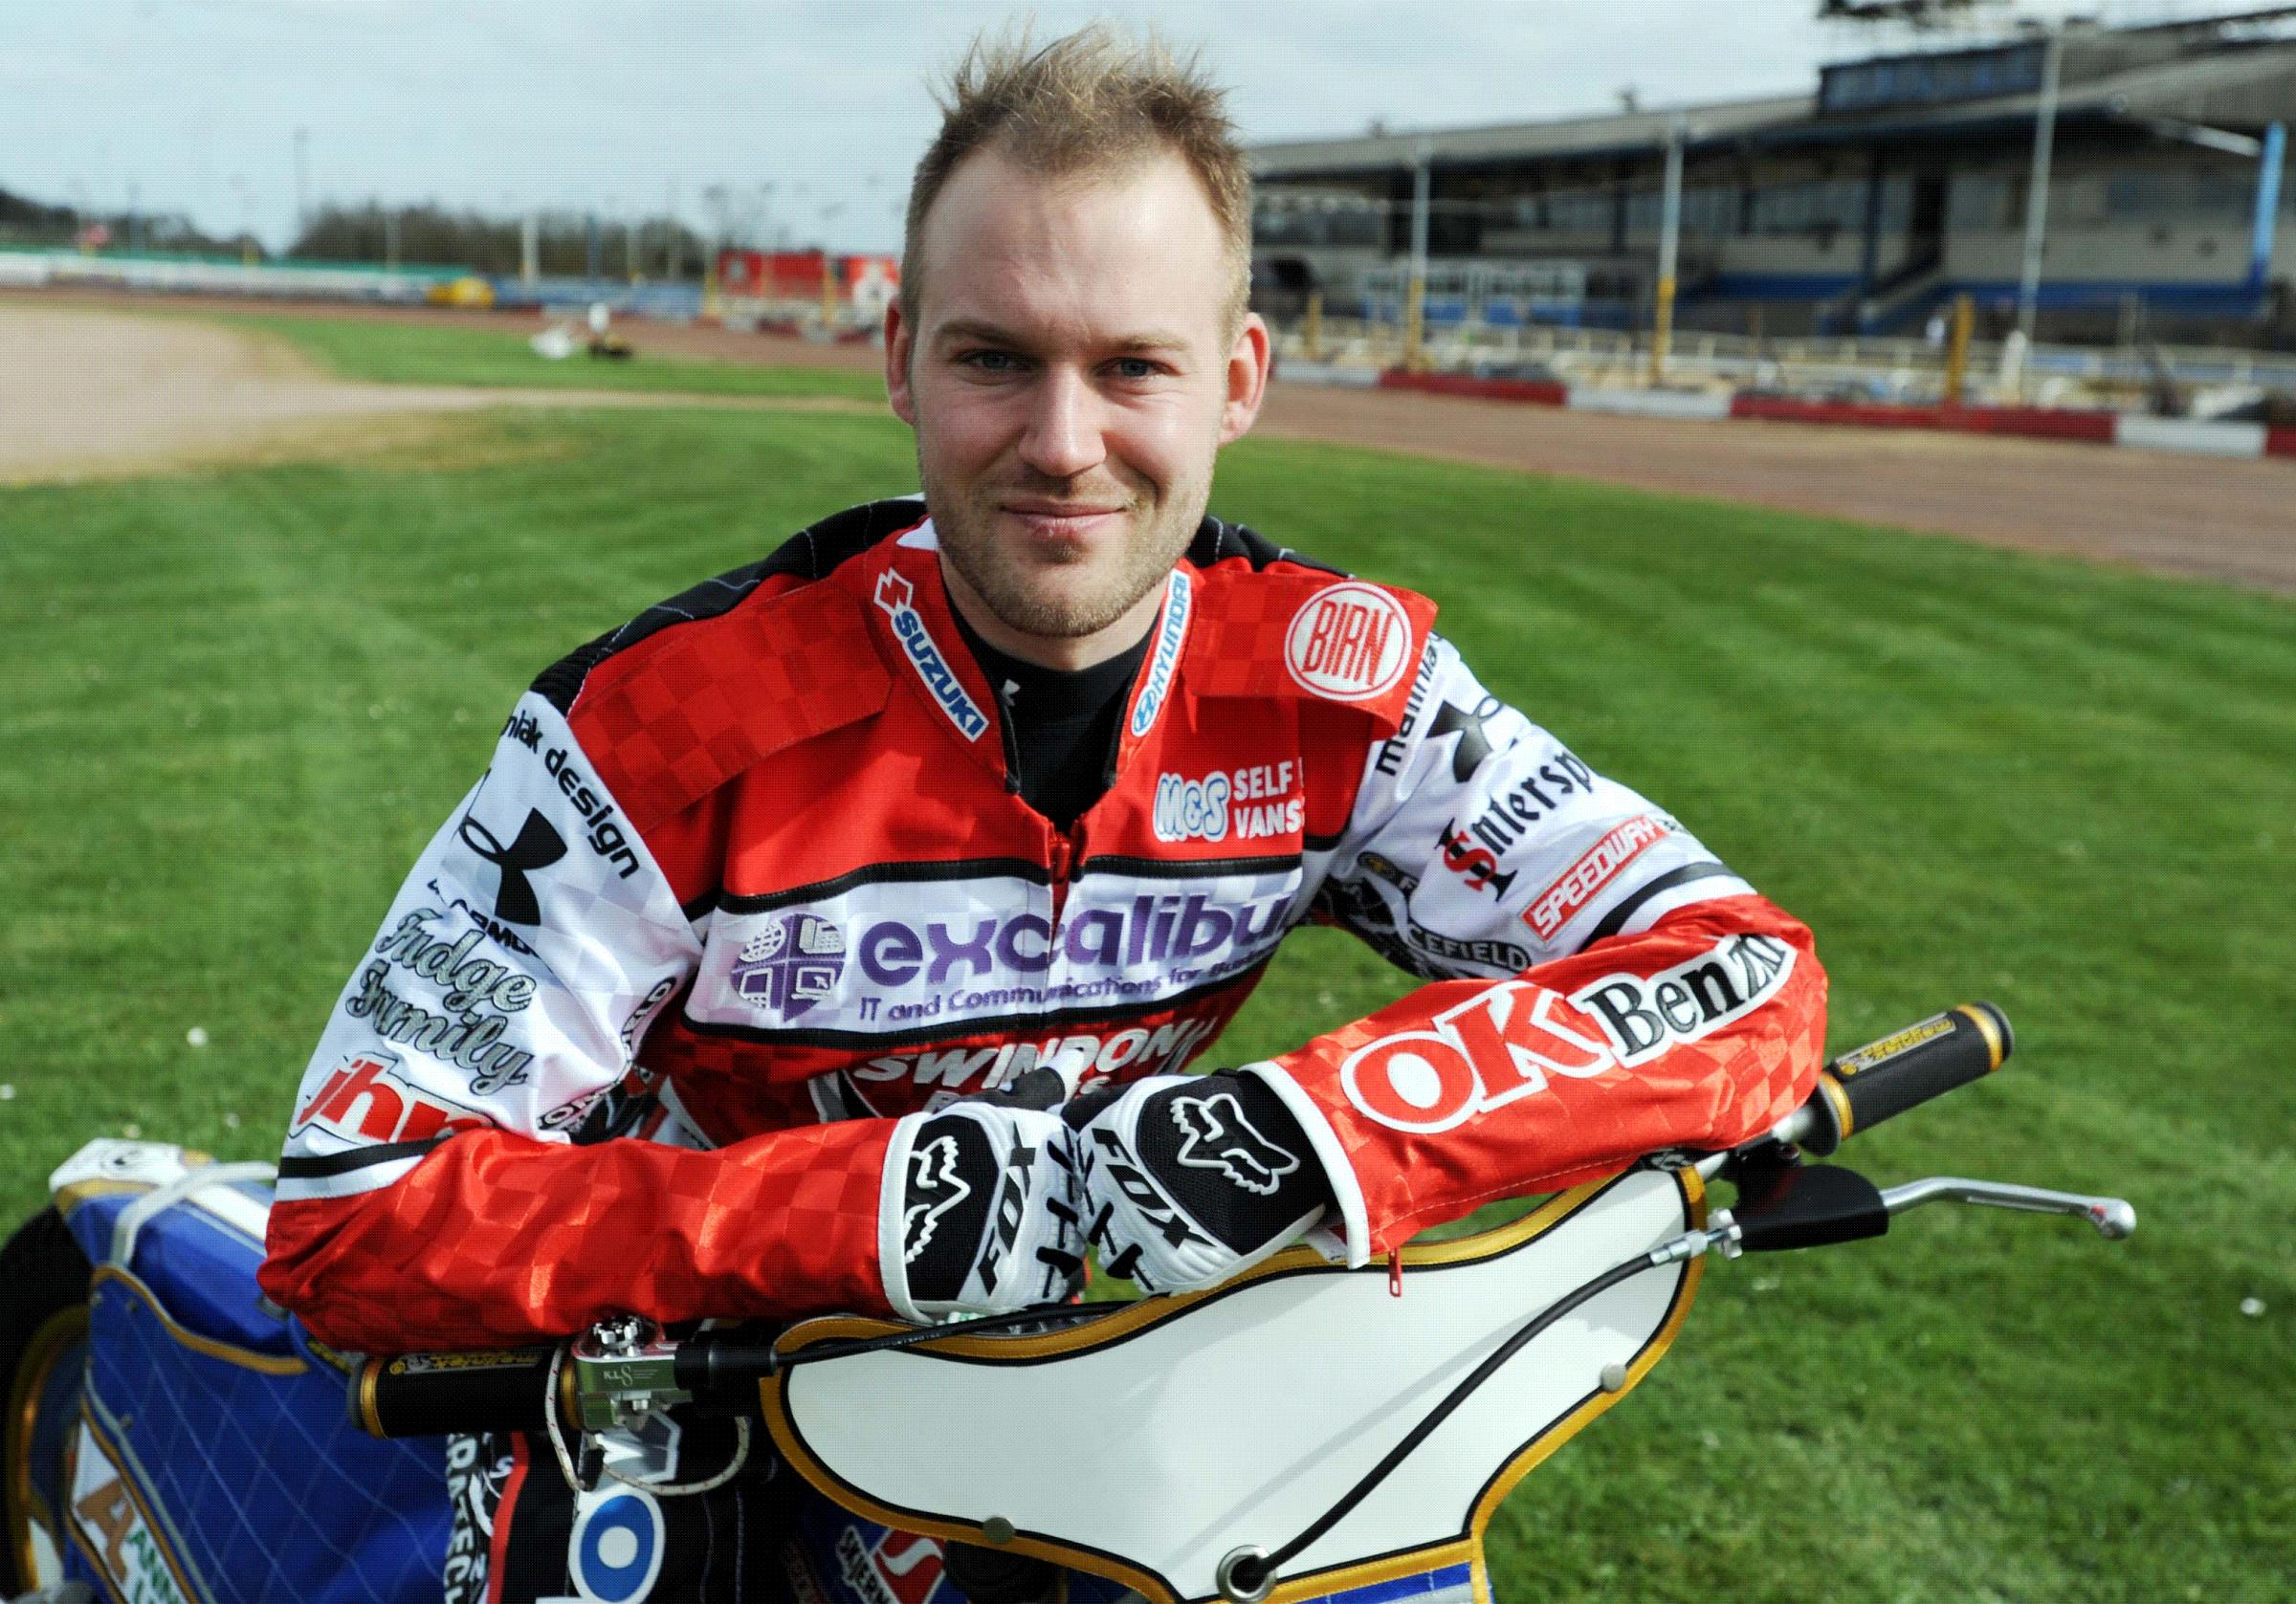 Former Robins' rider and now guest Nicolai Klindt